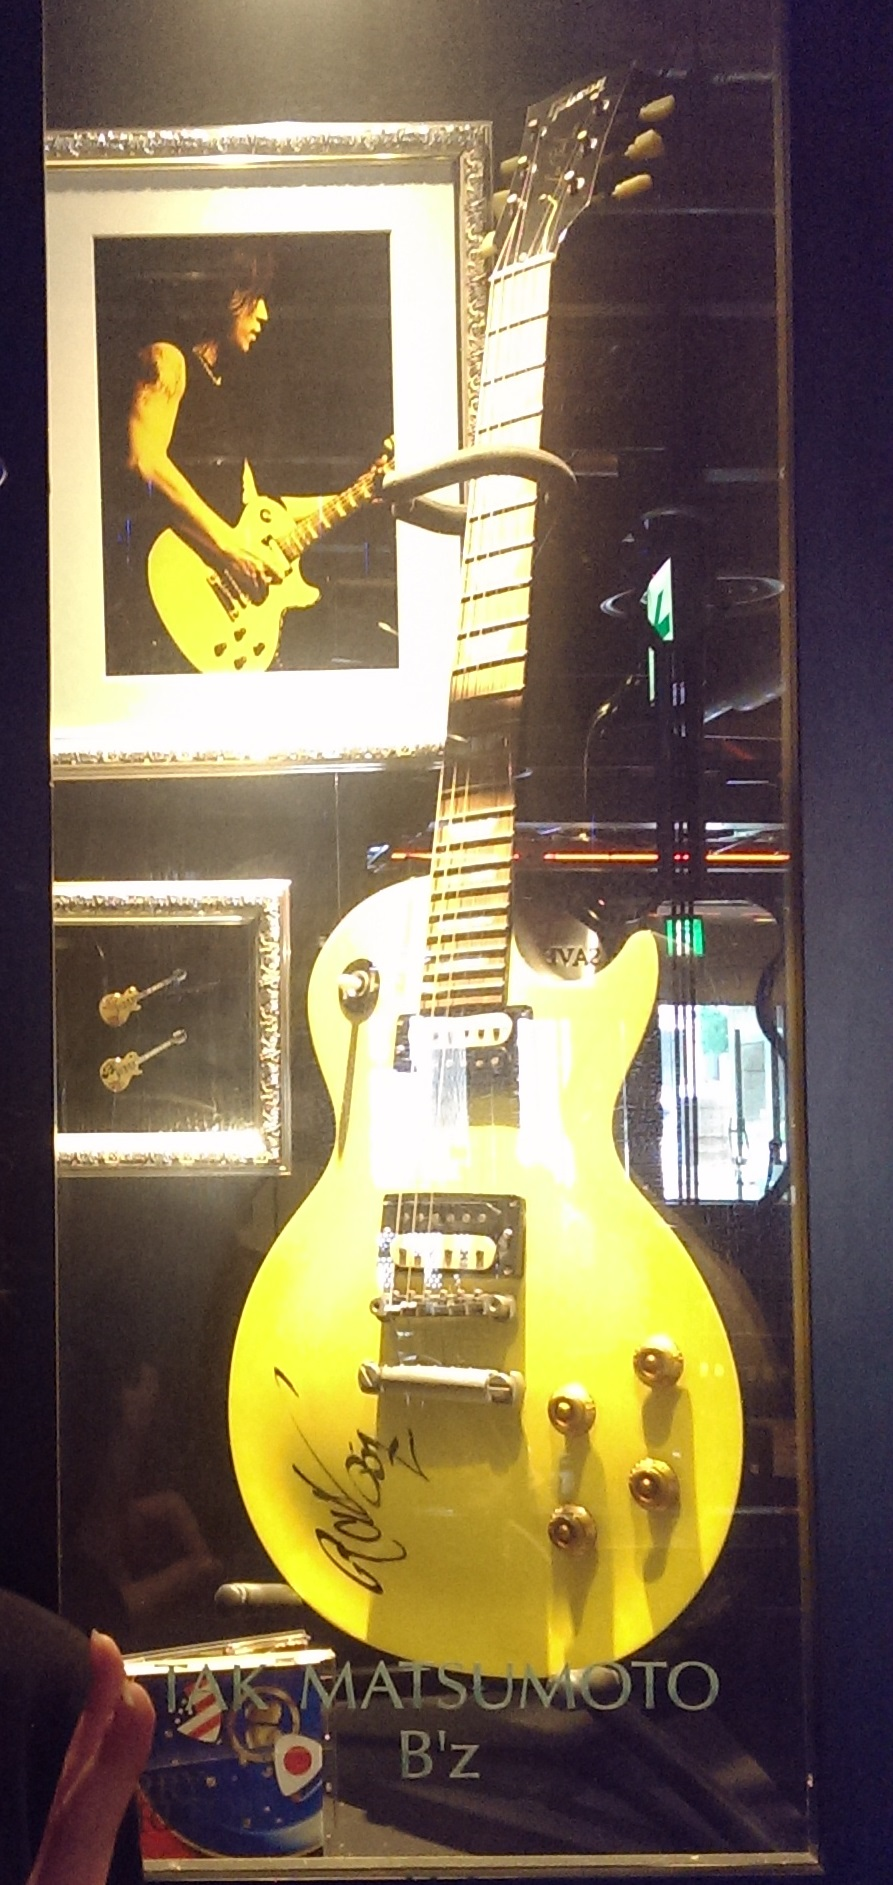 Tak Matsumoto's guitar on display at the Hard Rock Cafe in Osaka